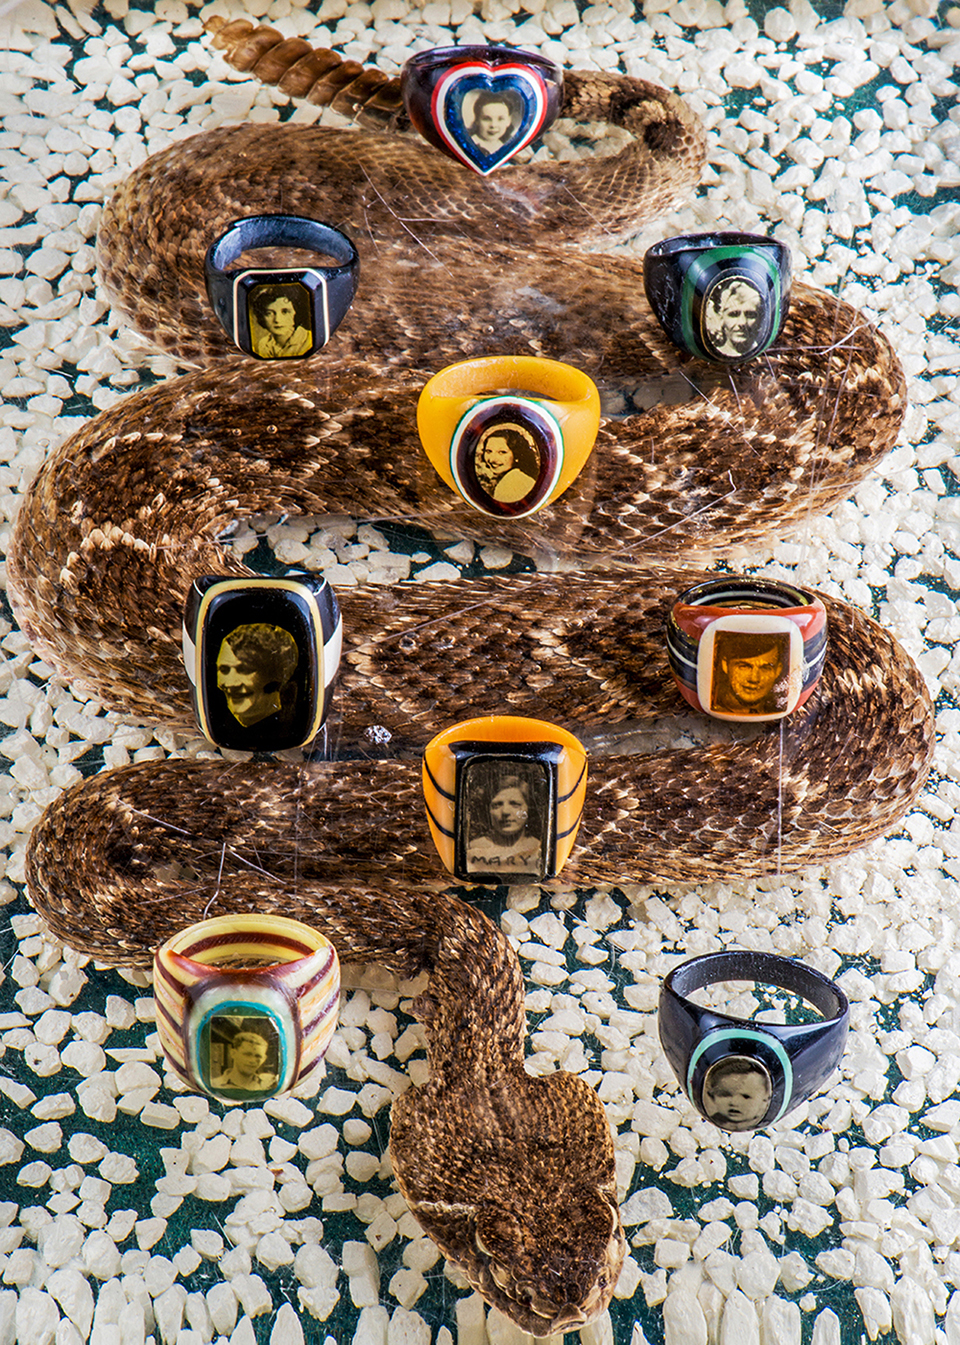 """Examples from Strickland's collection include tributes to children who died as well as """"sweetheart"""" rings and prison rings, which were crafted from Bakelite toothbrushes from behind bars. (Photos by Danny Fulgencio)"""